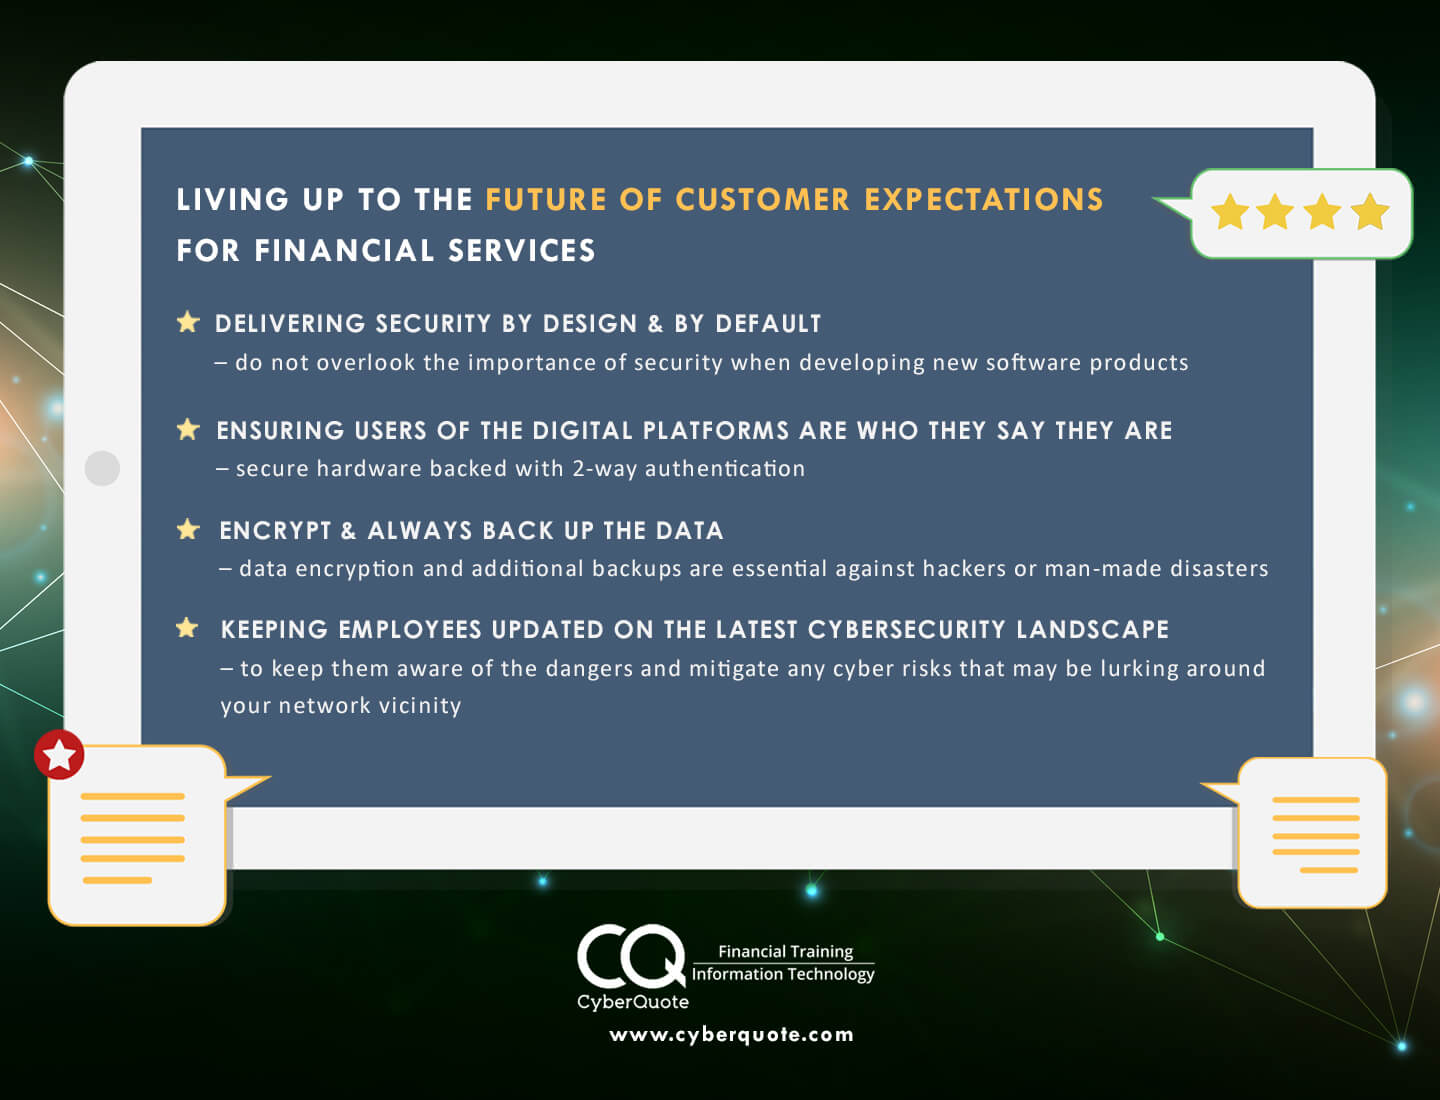 Living Up To The Future of Customer Expectations for Financial Services